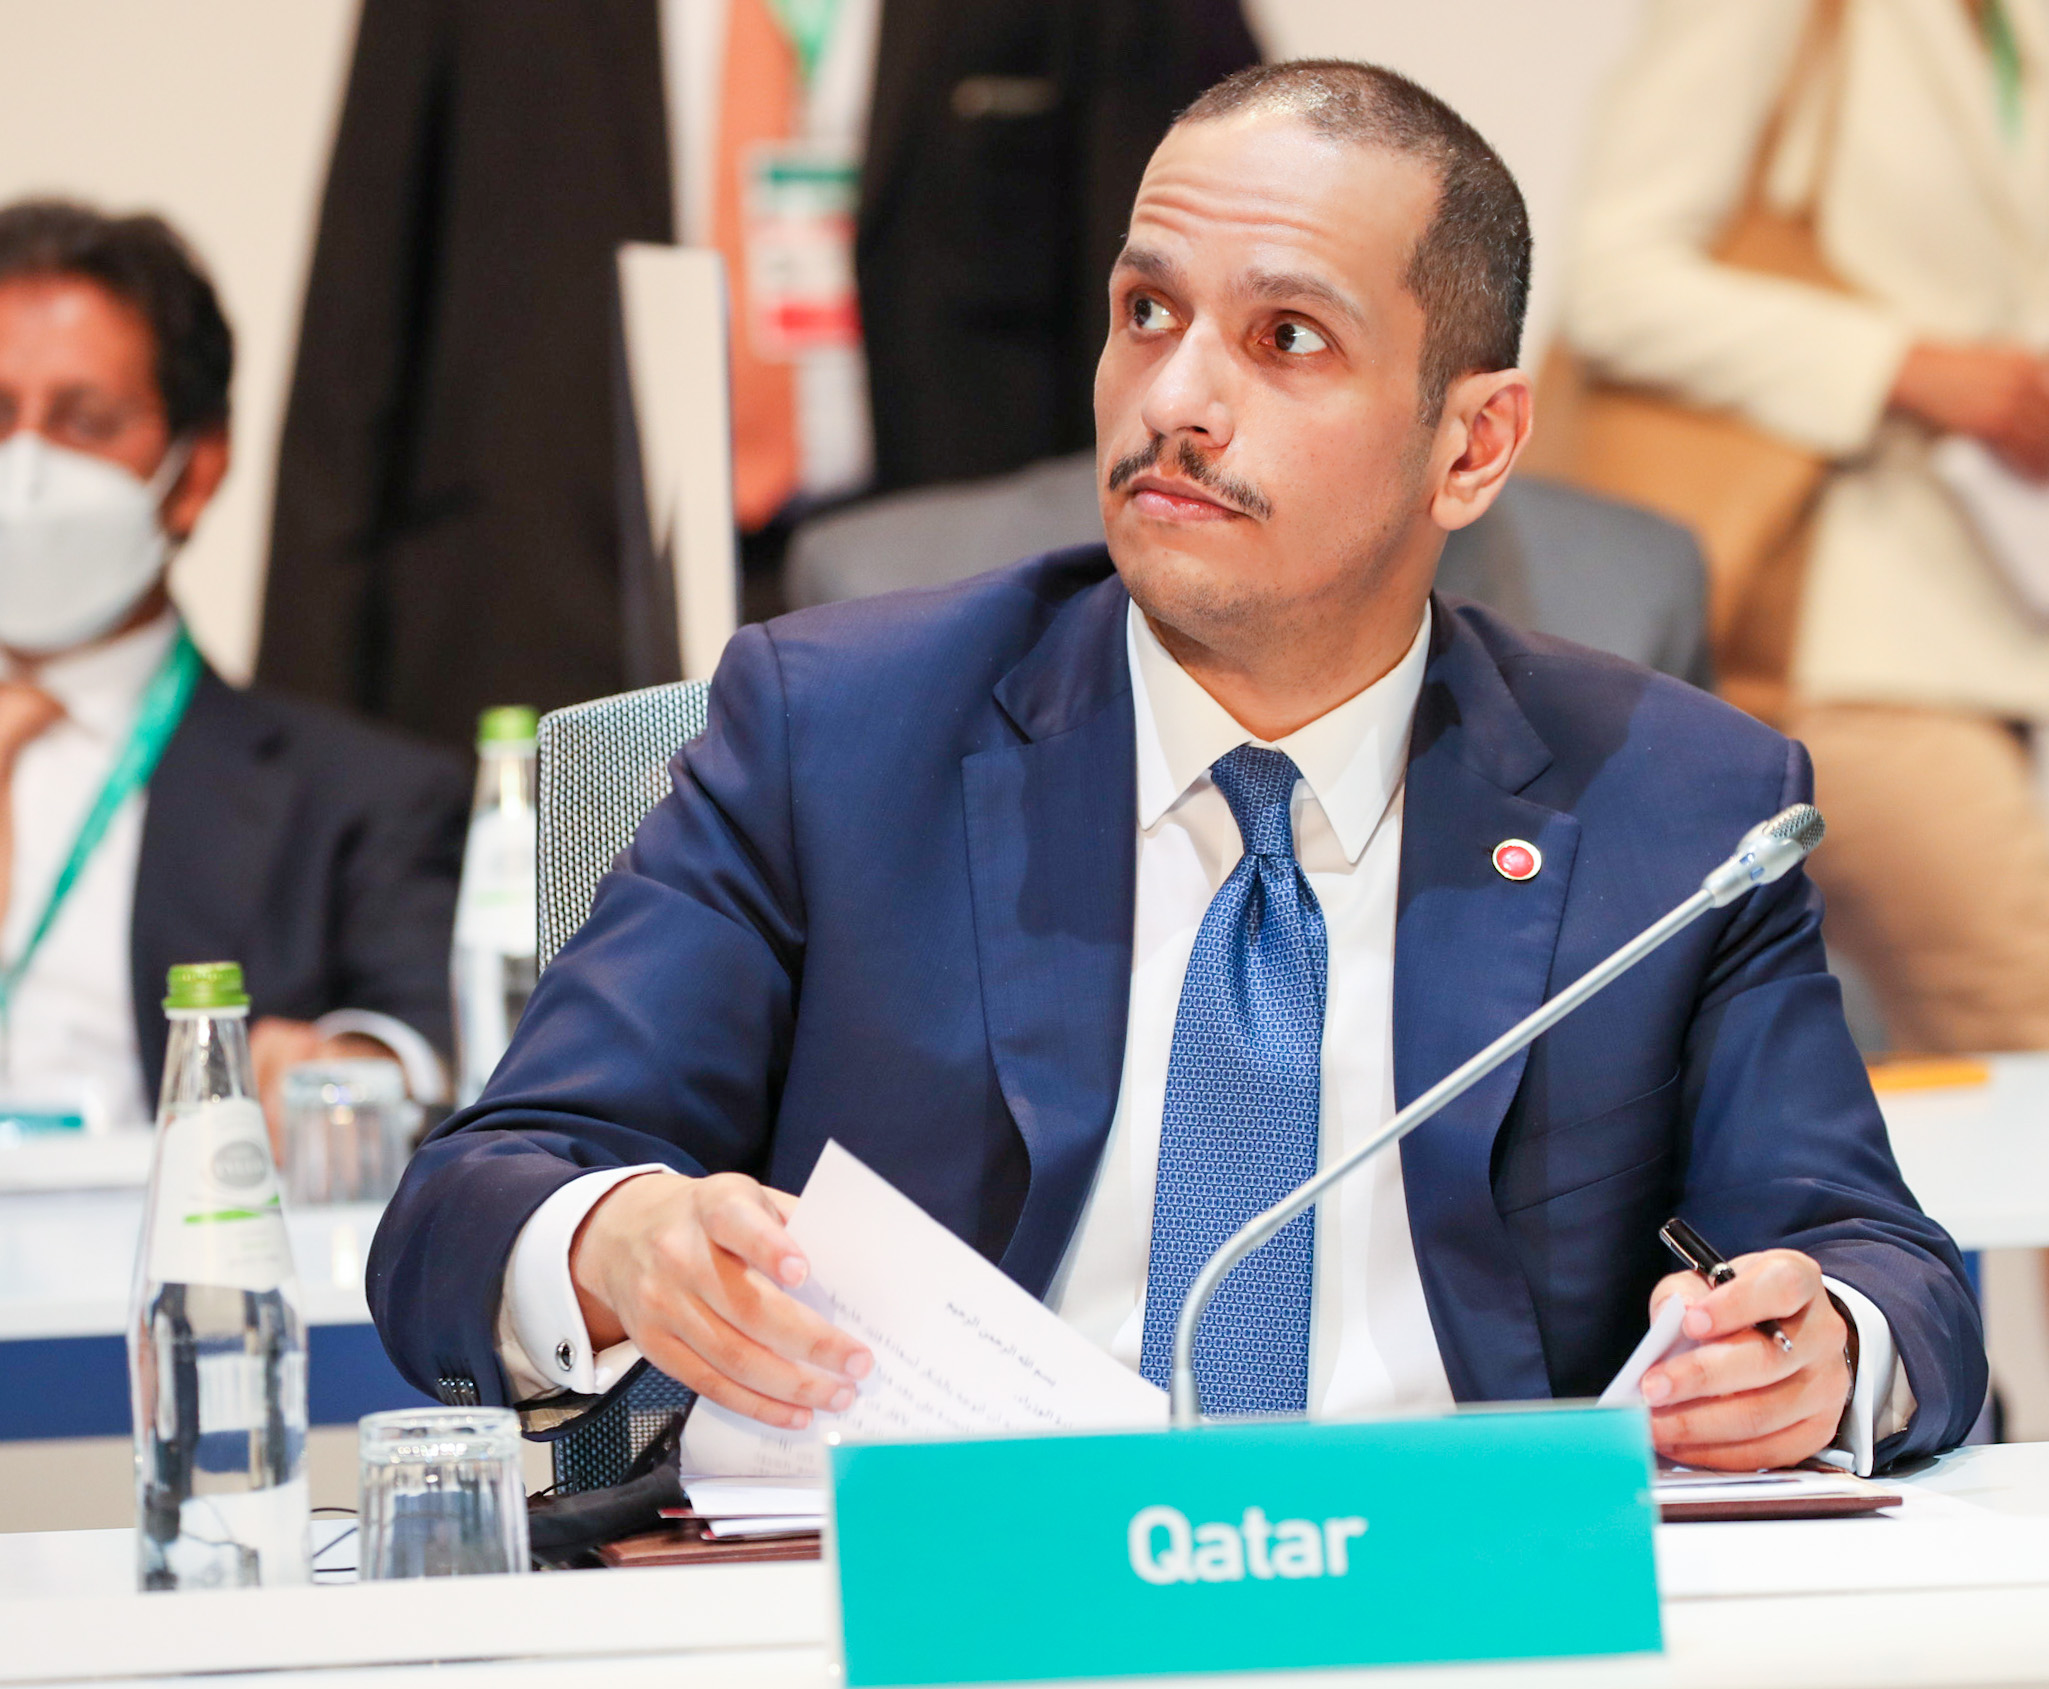 Qatar Underlines Firm Support for International Efforts to Reach Political Solution to Syrian Crisis